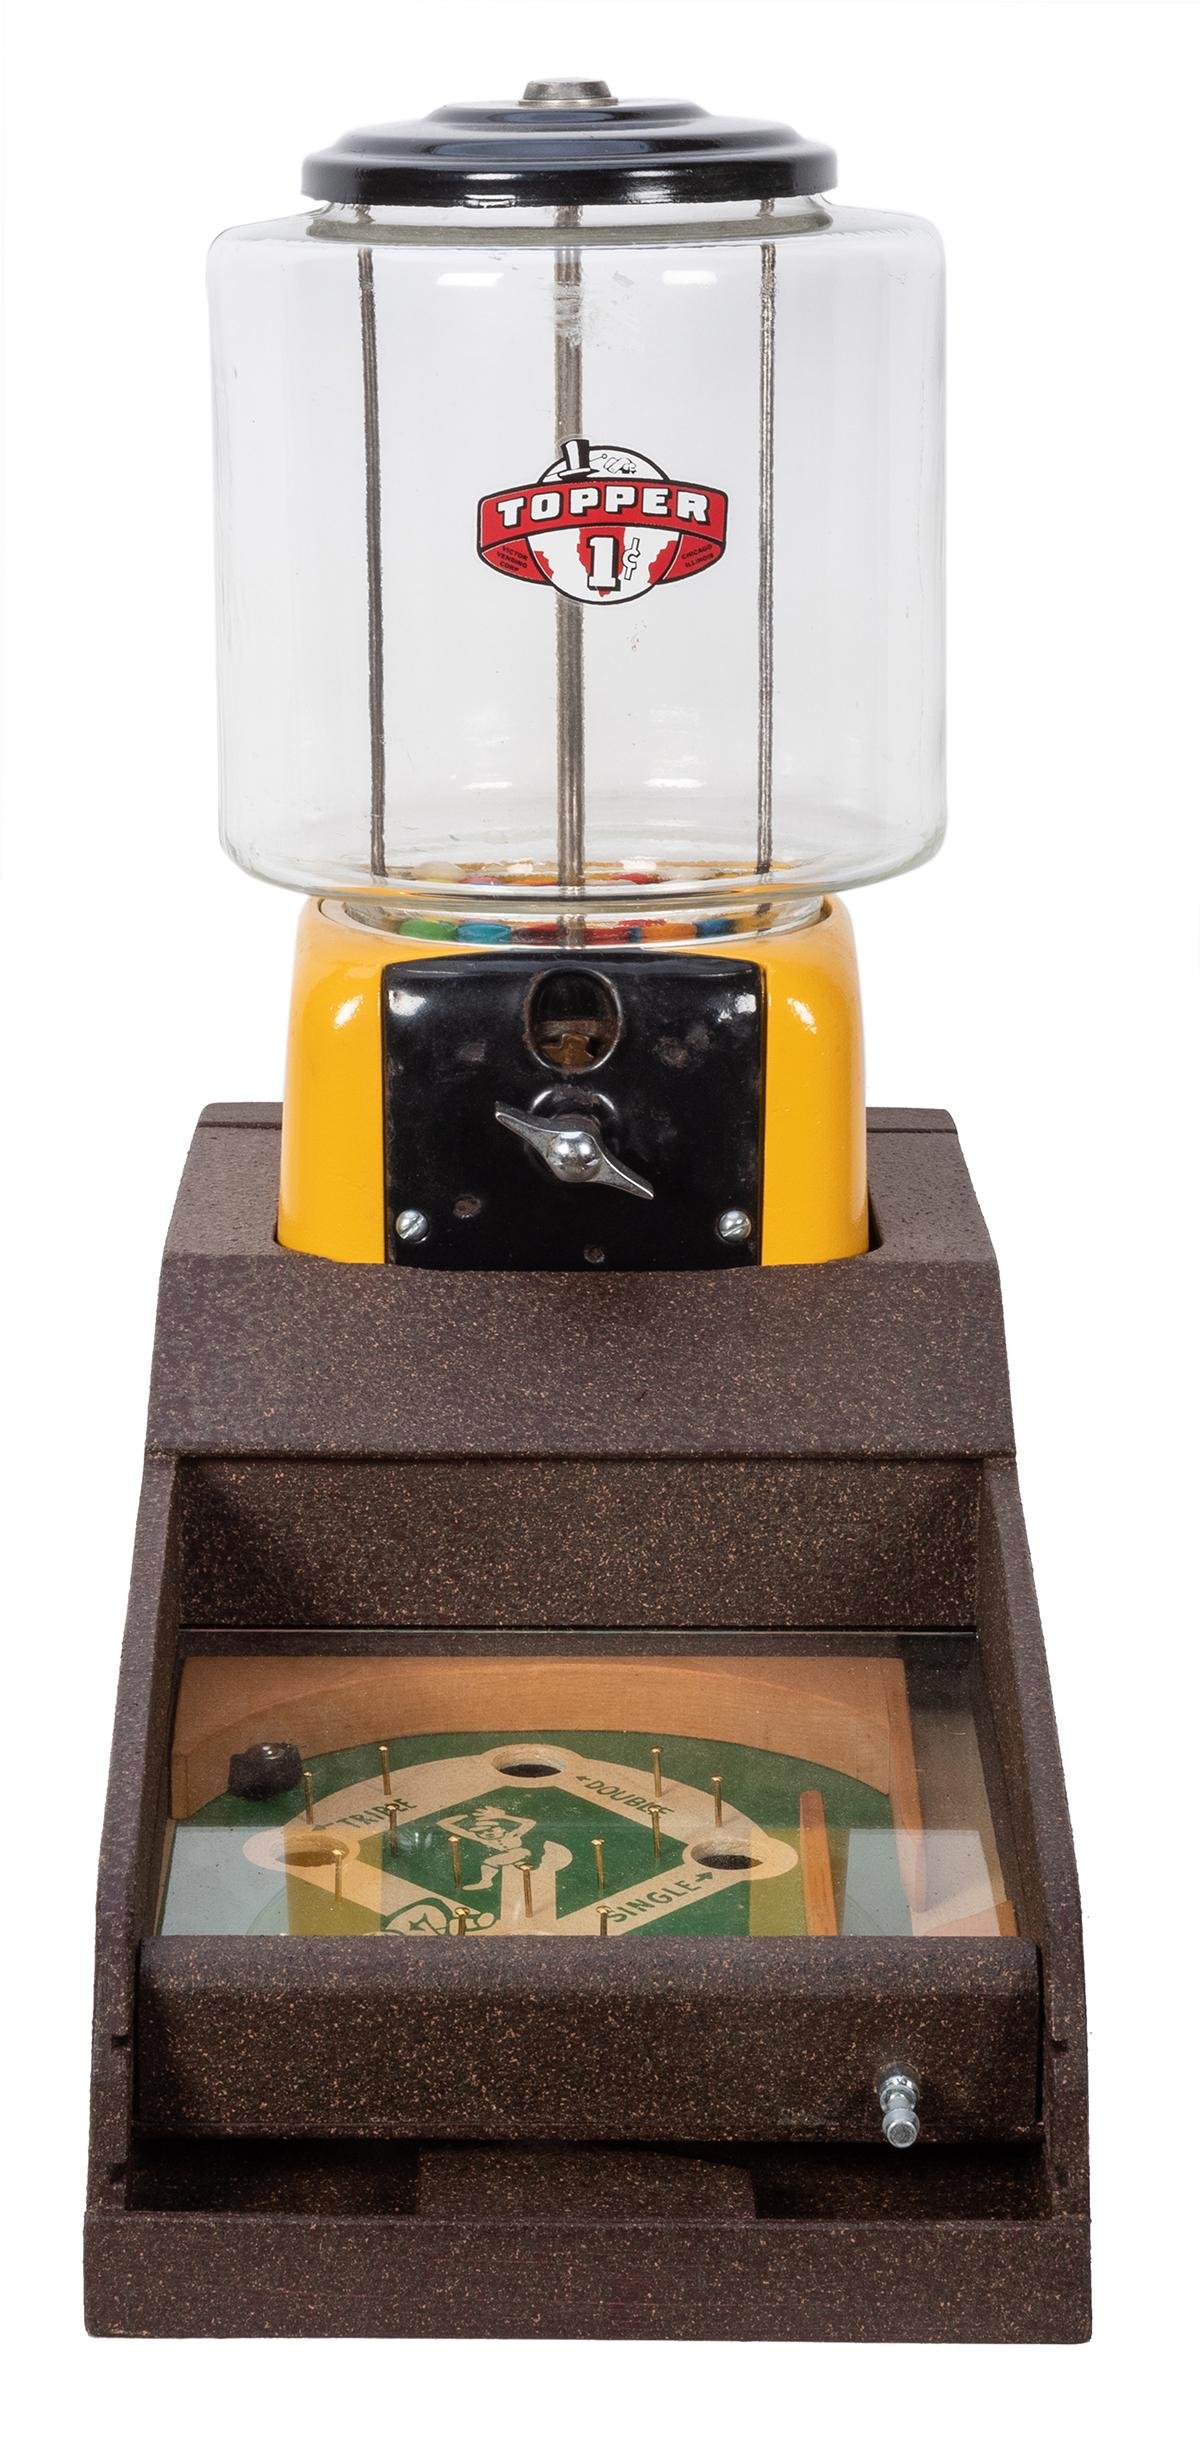 Topper One Cent Gumball Vendor with Baseball Flip Game.